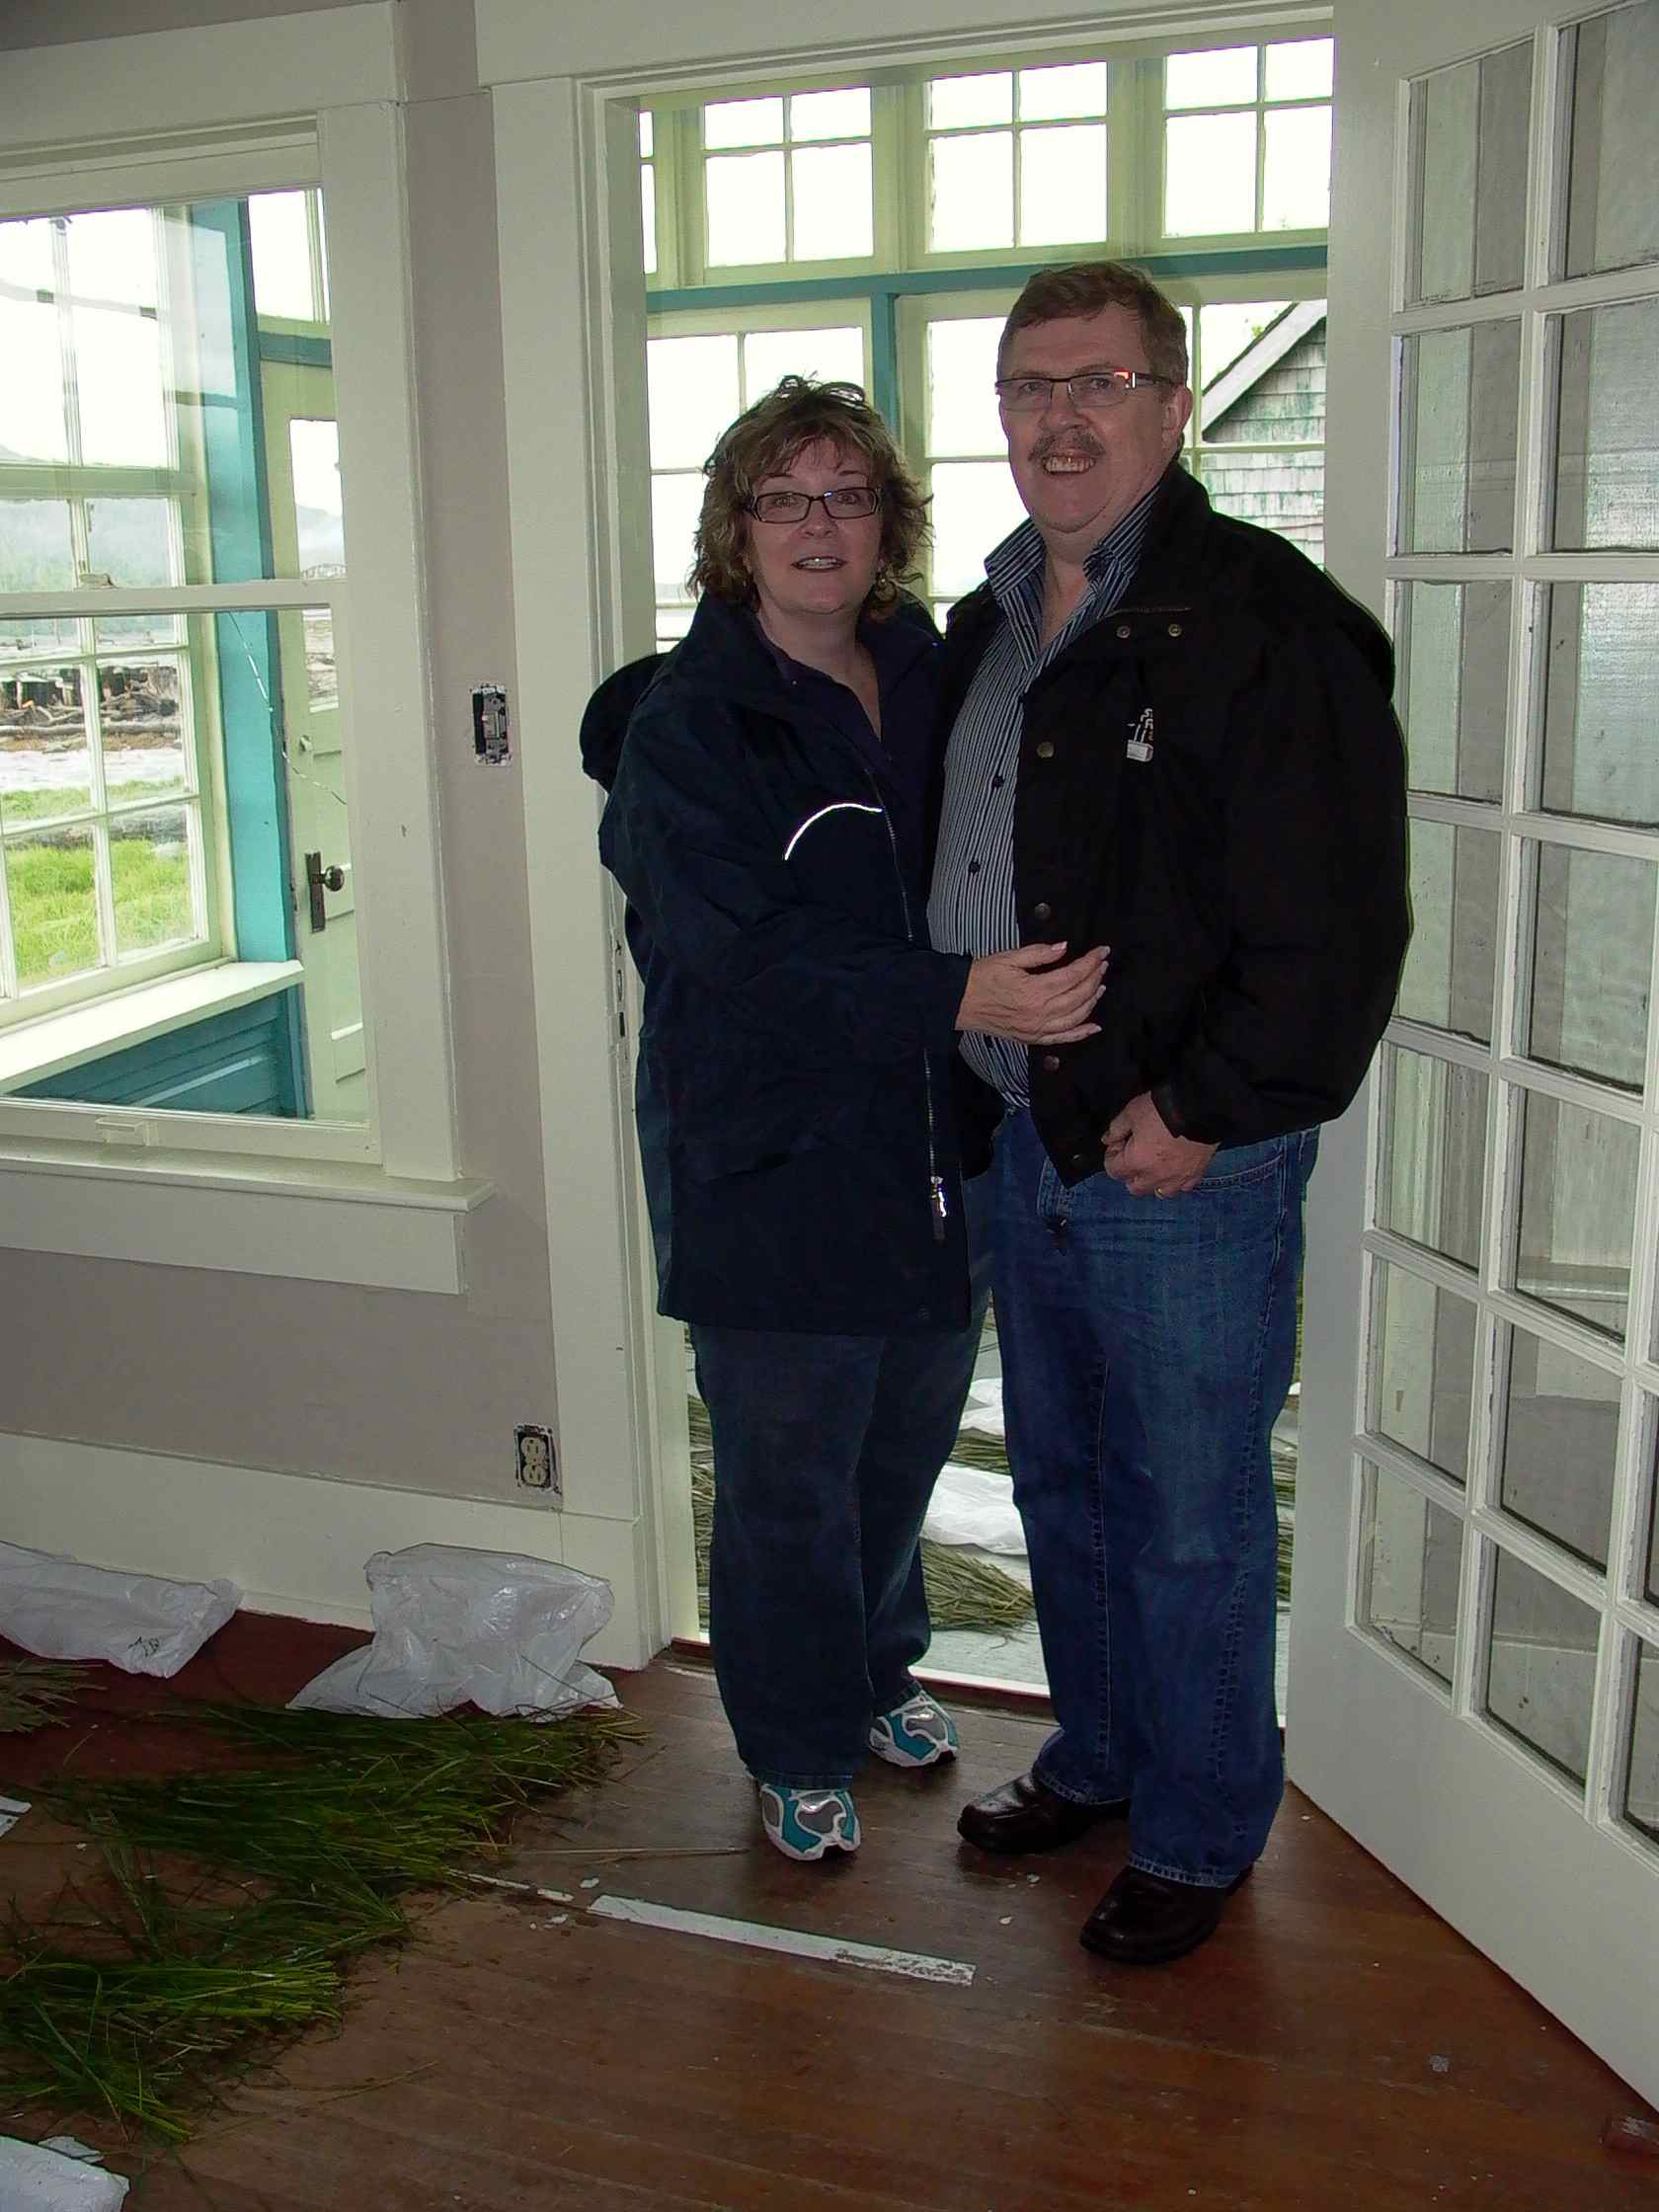 Cassiar Cannery: Rod Breen with his wife Brenda standing in the living room of his aunt and uncle's house who were Ewen and Kathryn Macmillan - the principles of Cassiar Packing Company for many decades.